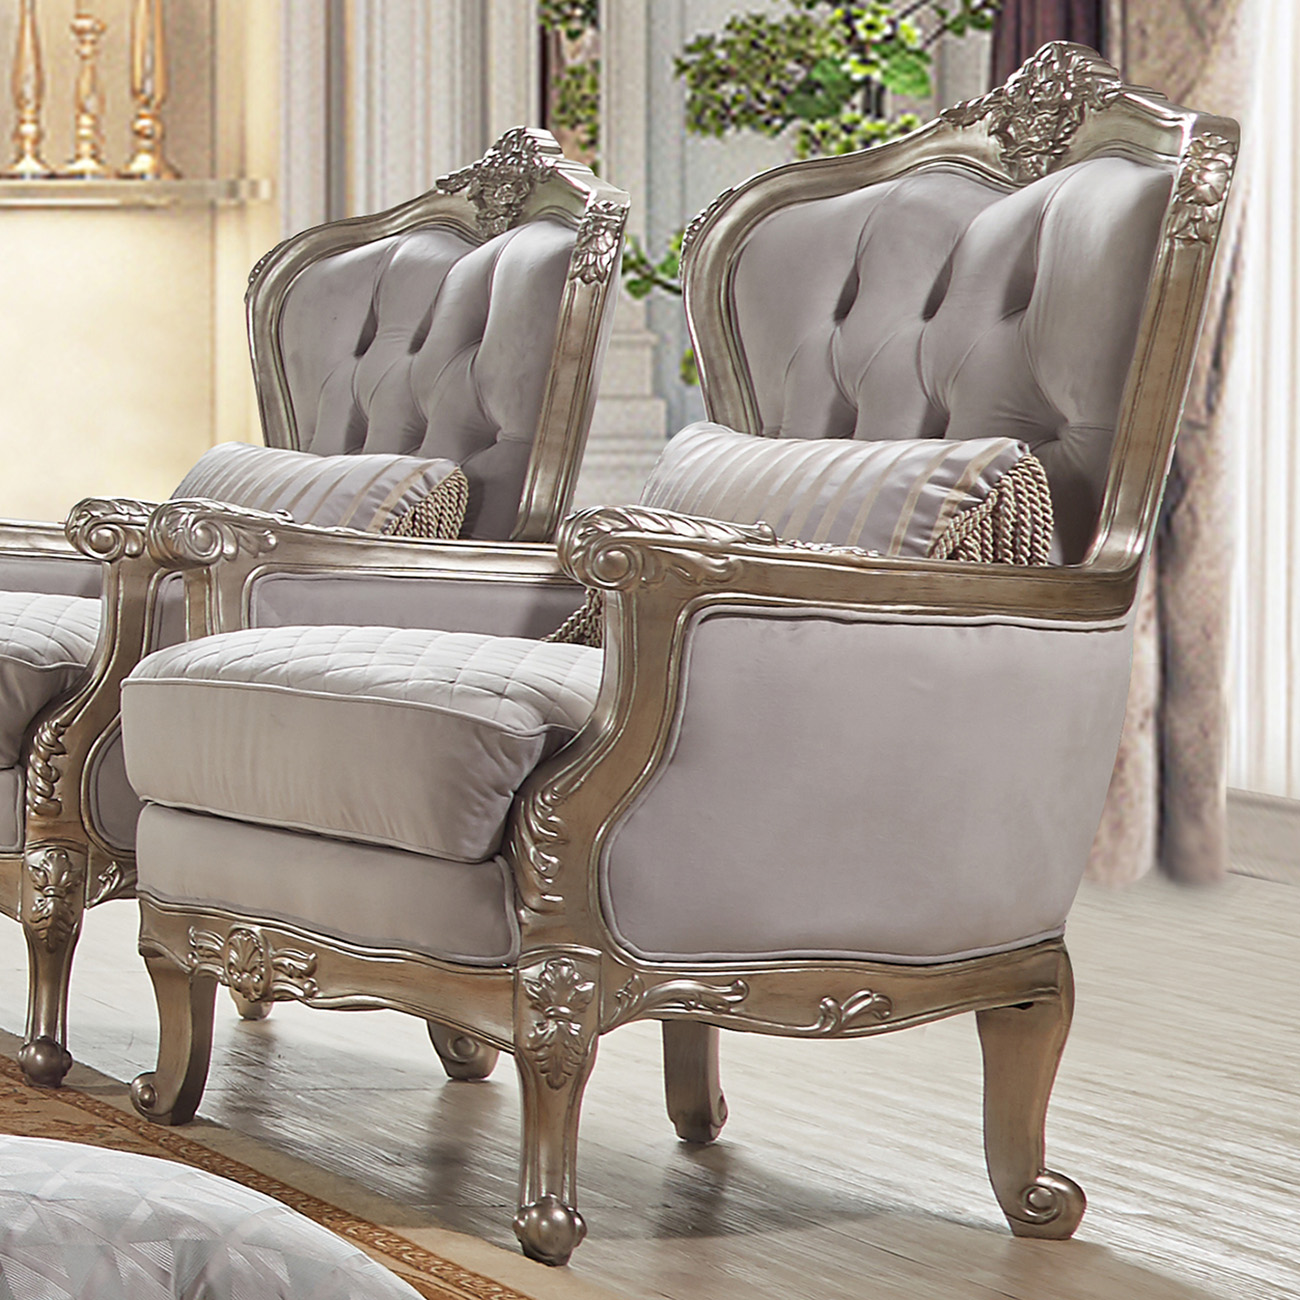 French Provincial Living Room 20339